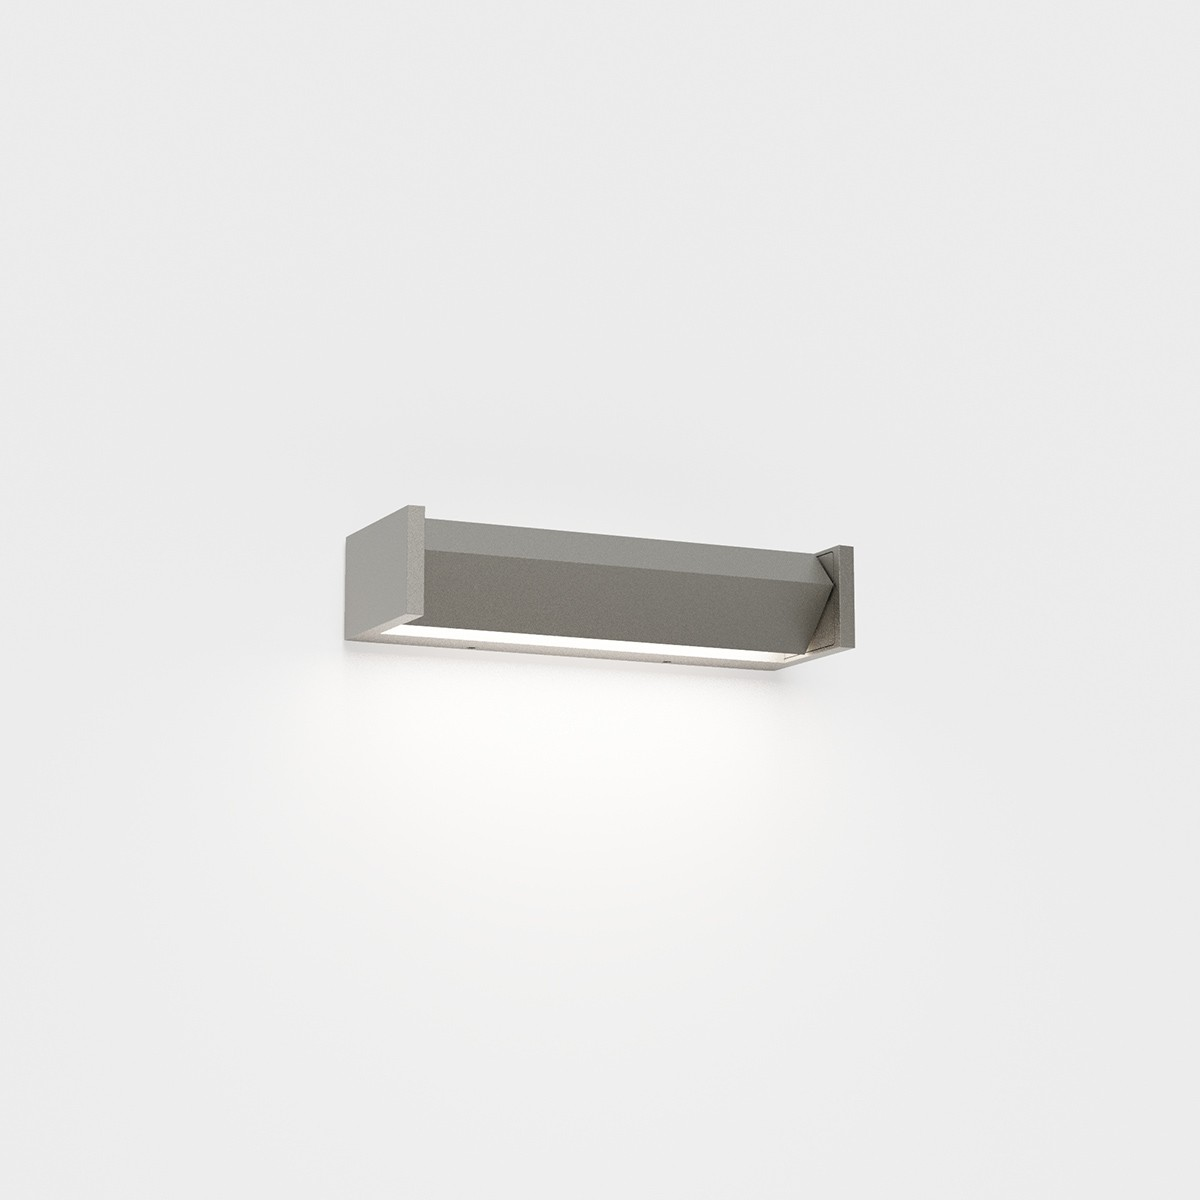 IP44.de Slat One Wand- / Deckenleuchte, space grey (grau)